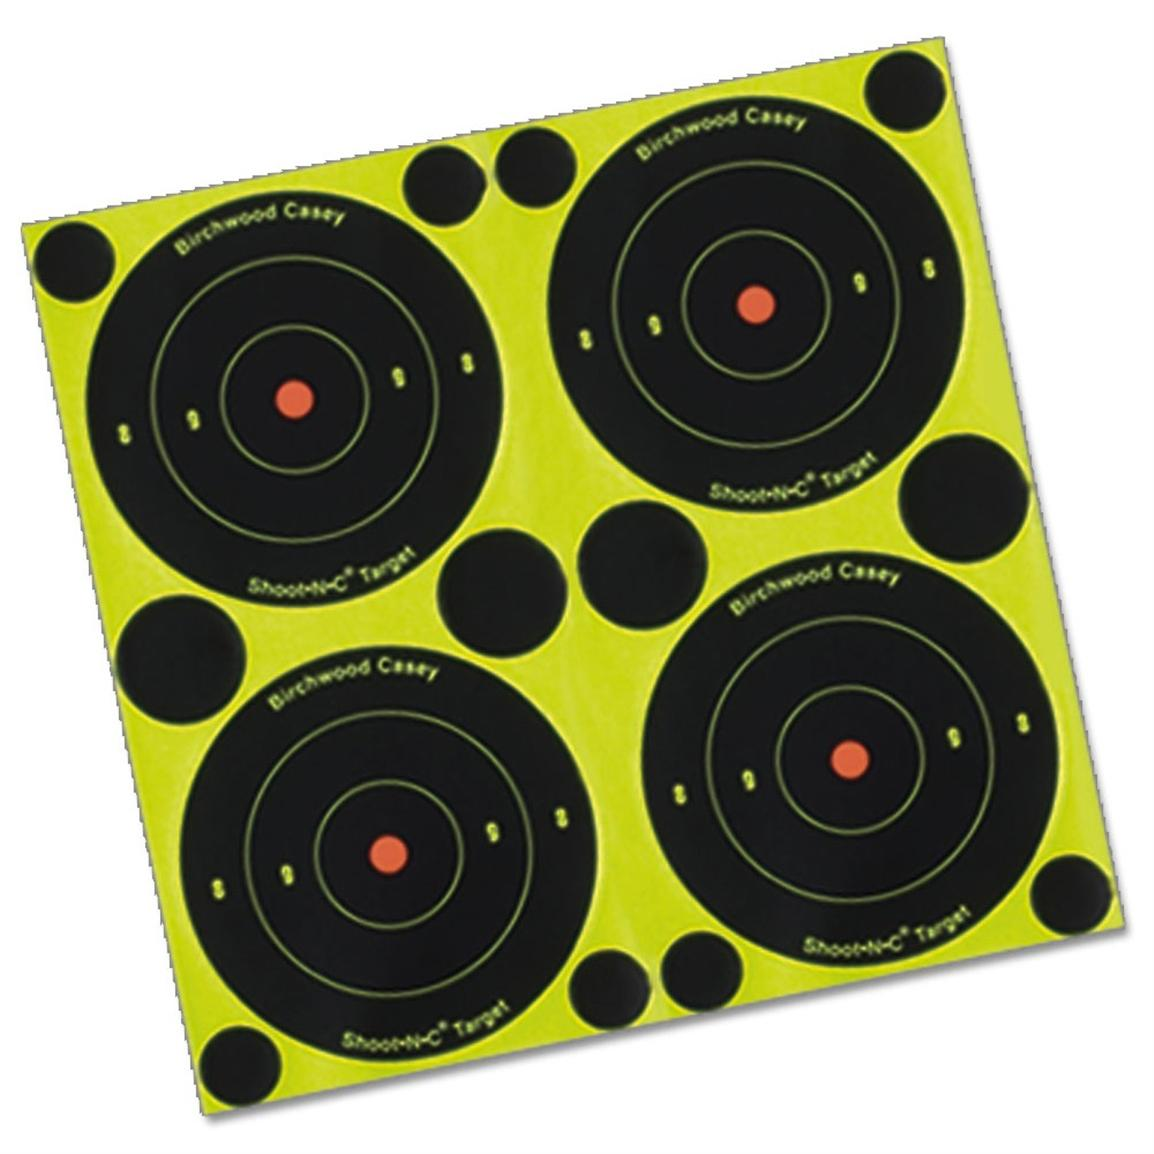 Birchwood Casey® Shoot-N-C® 3 inch Bull's Eye Target 1,000-Sheet Pack